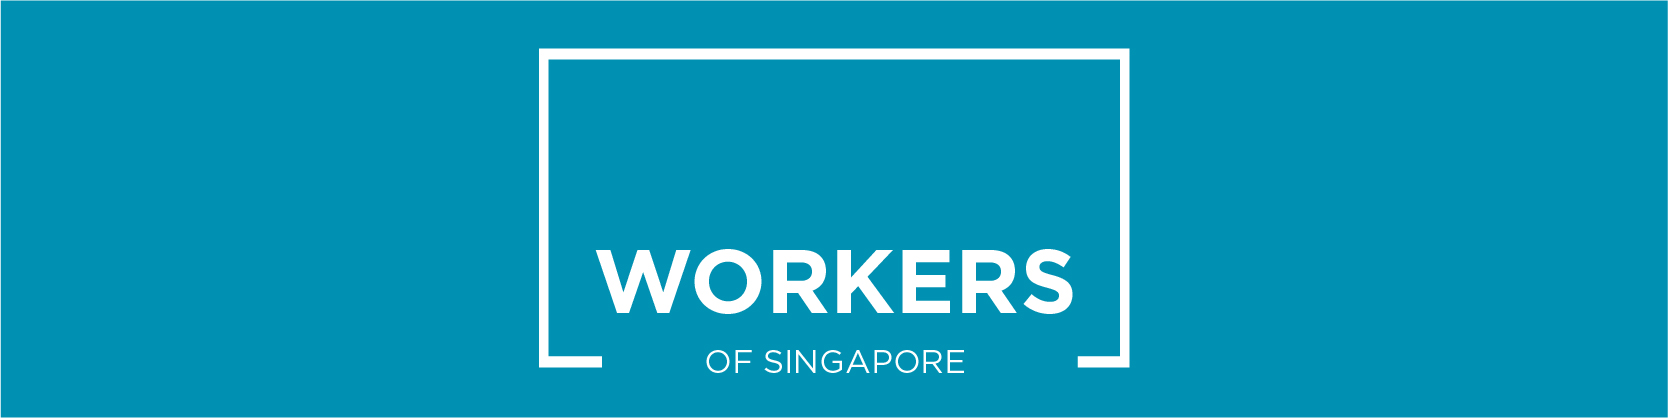 Workers of Singapore